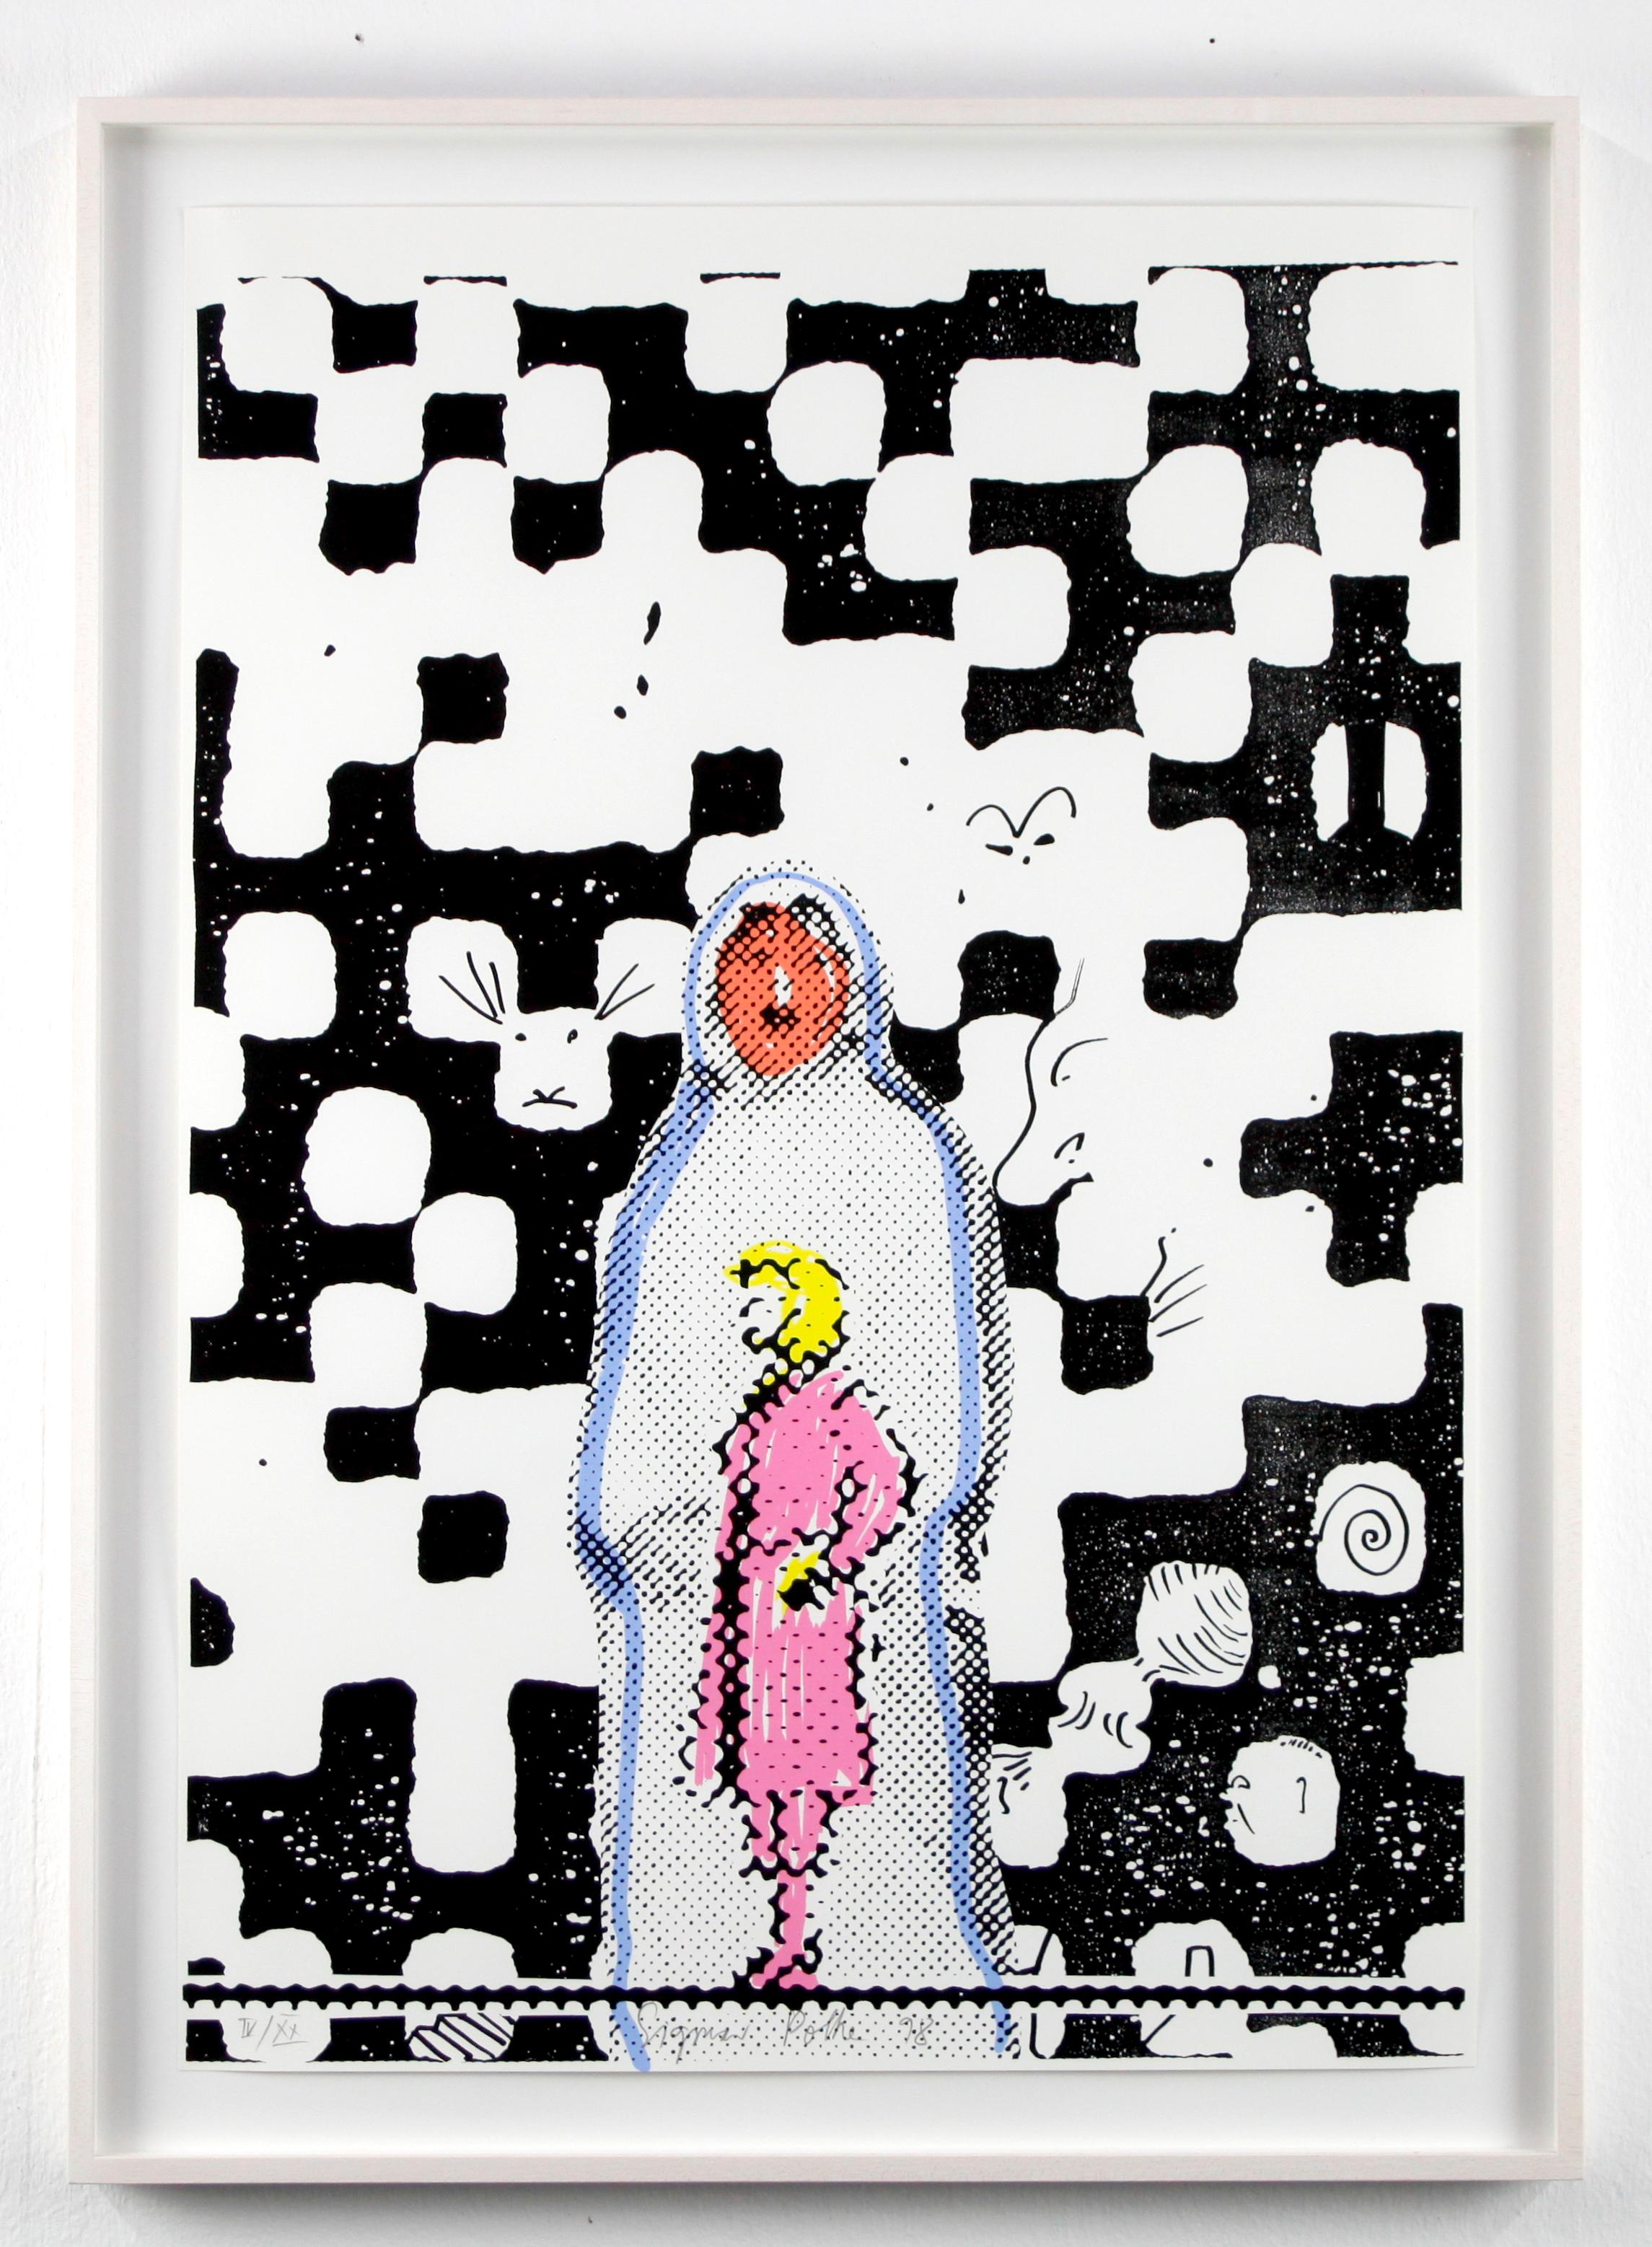 Hallucie // Screen print // Signed and numbered by Polke